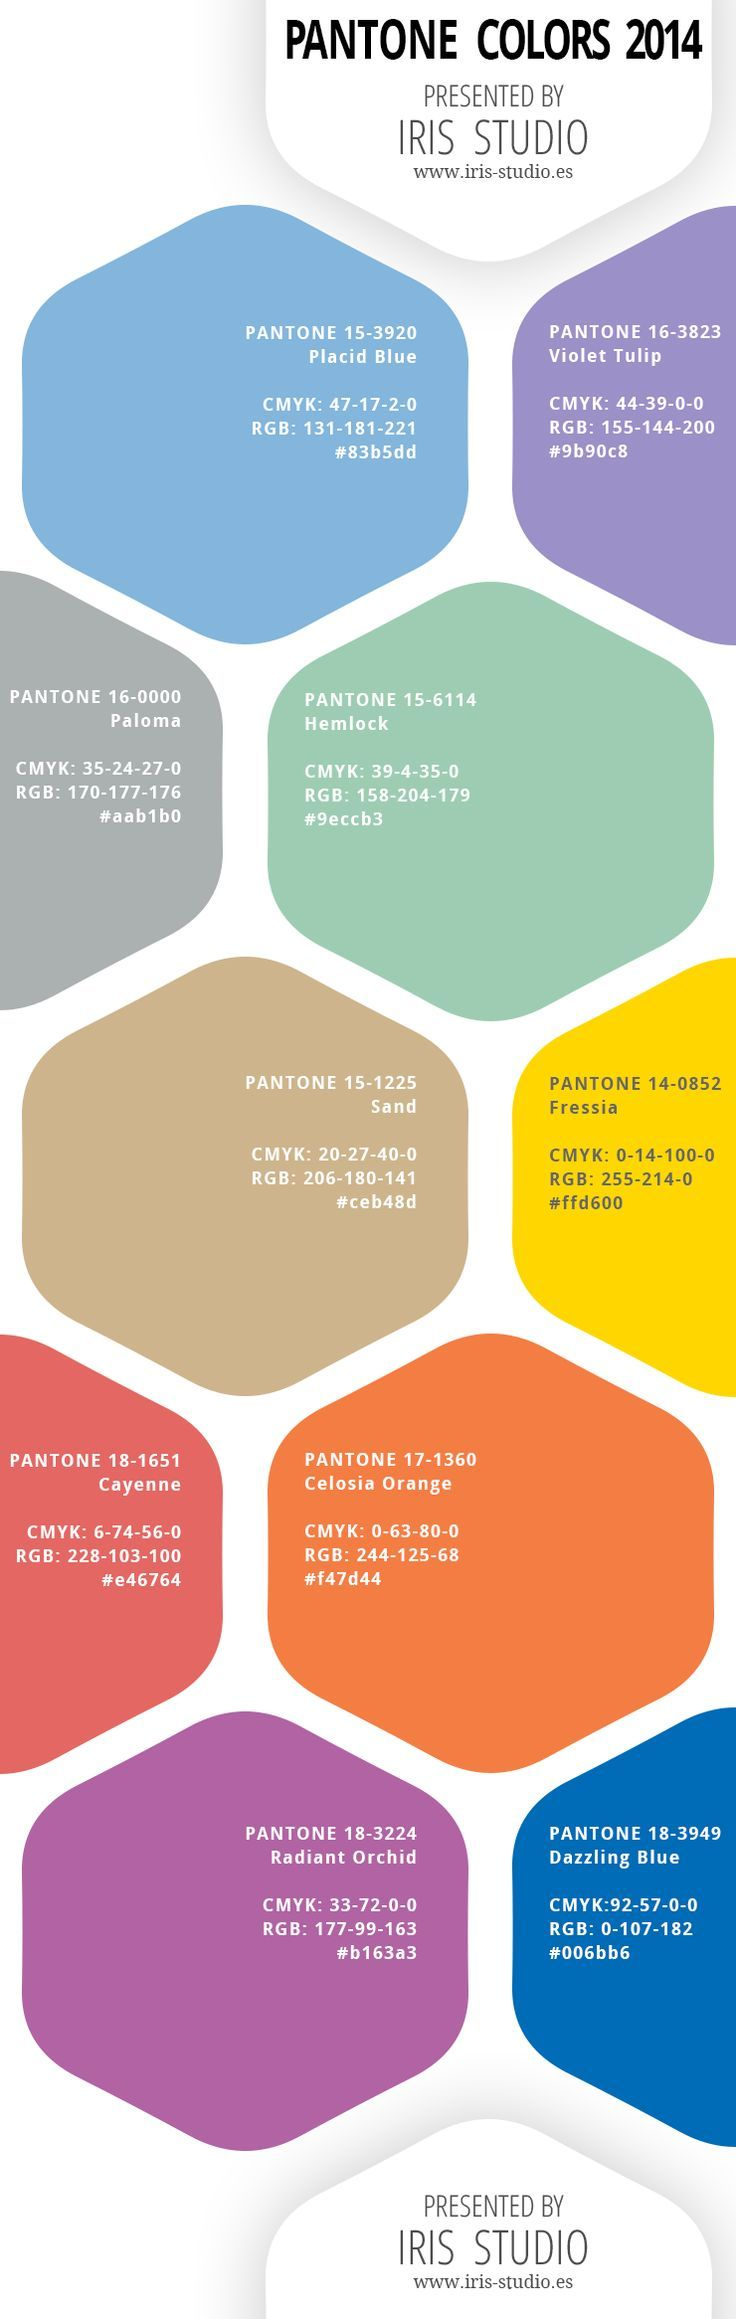 Spring colors of 2014 by Pantone with color codes CMYK, RGB, and HEX. Colores para la primavera 2014 Pantone. Con códigos de colores CMYK, RGB y Hex.